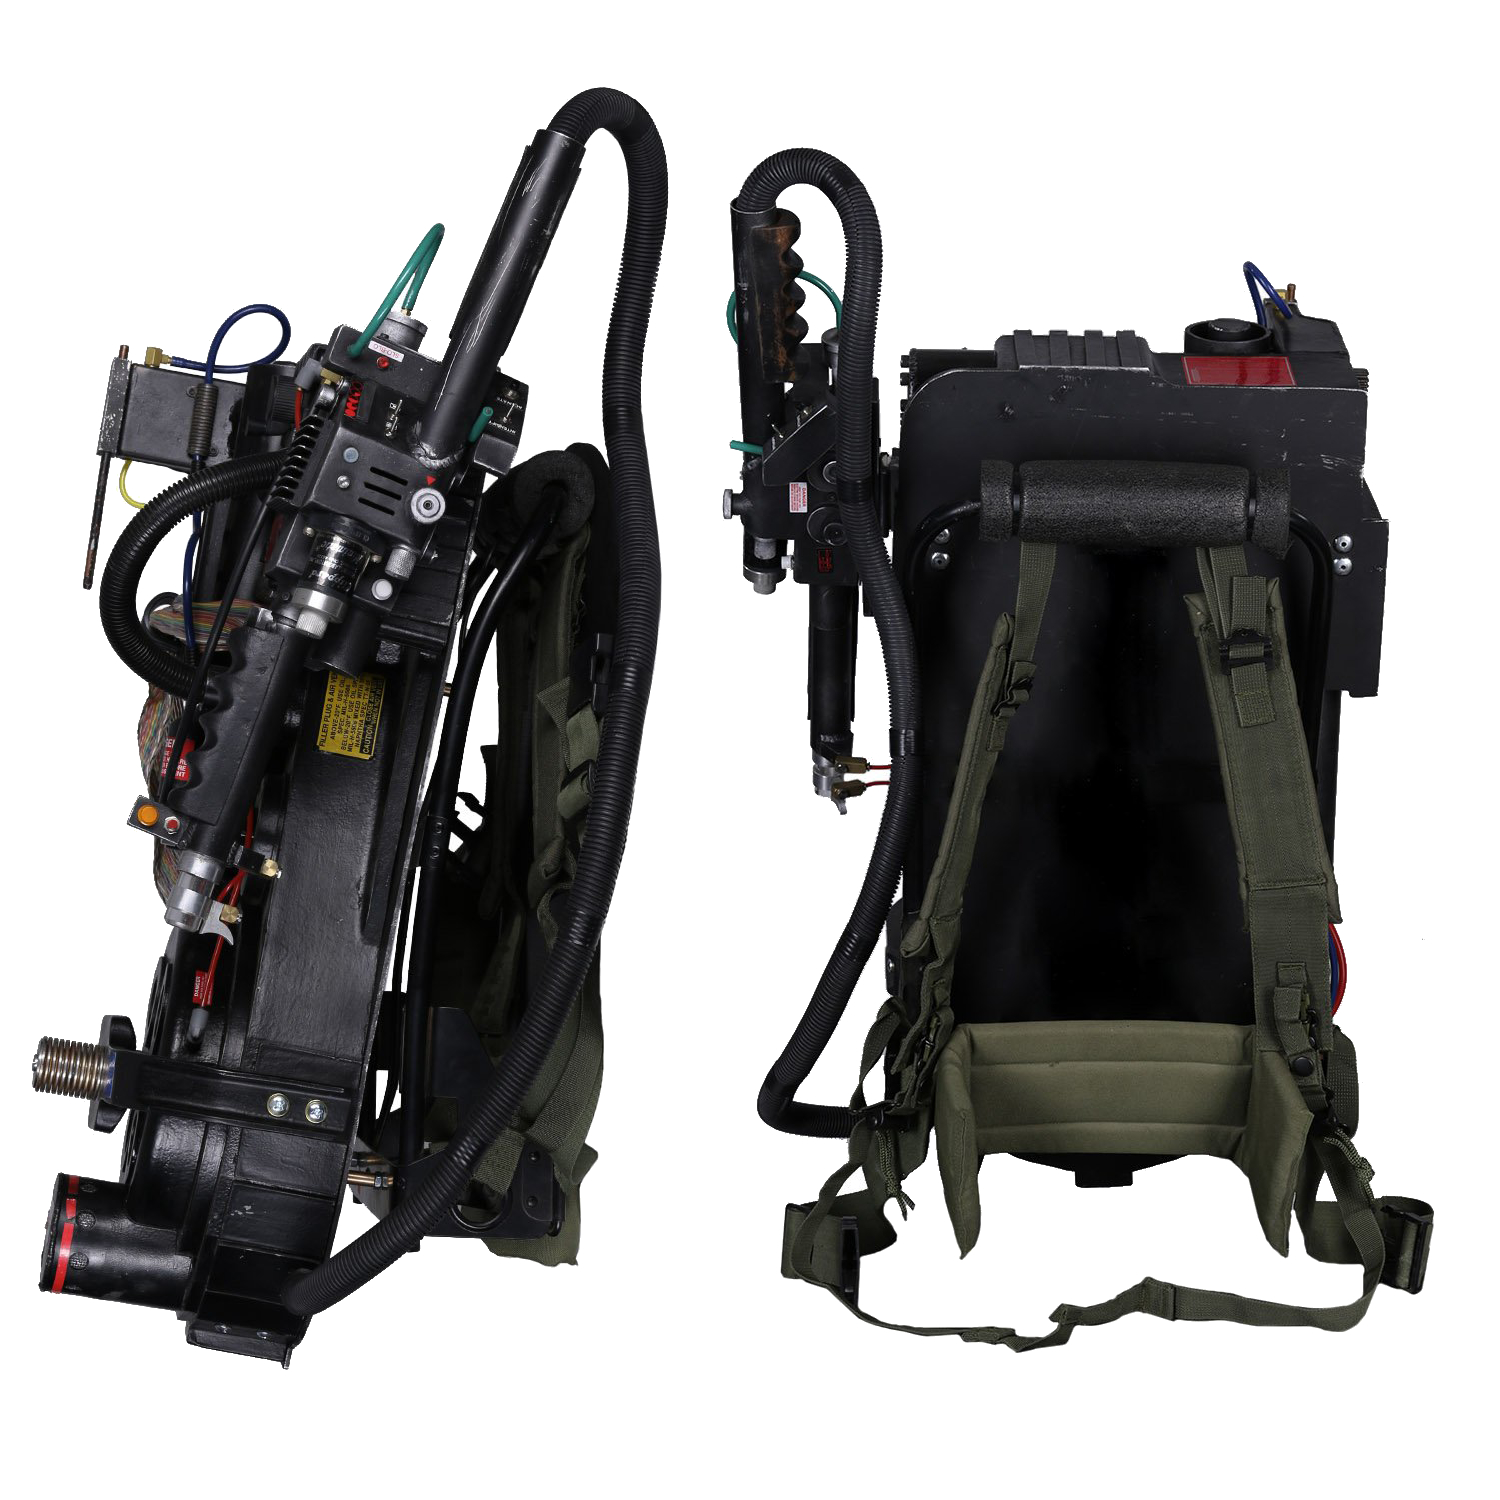 Ghostbusters - Egon Spengler Proton Pack Replica